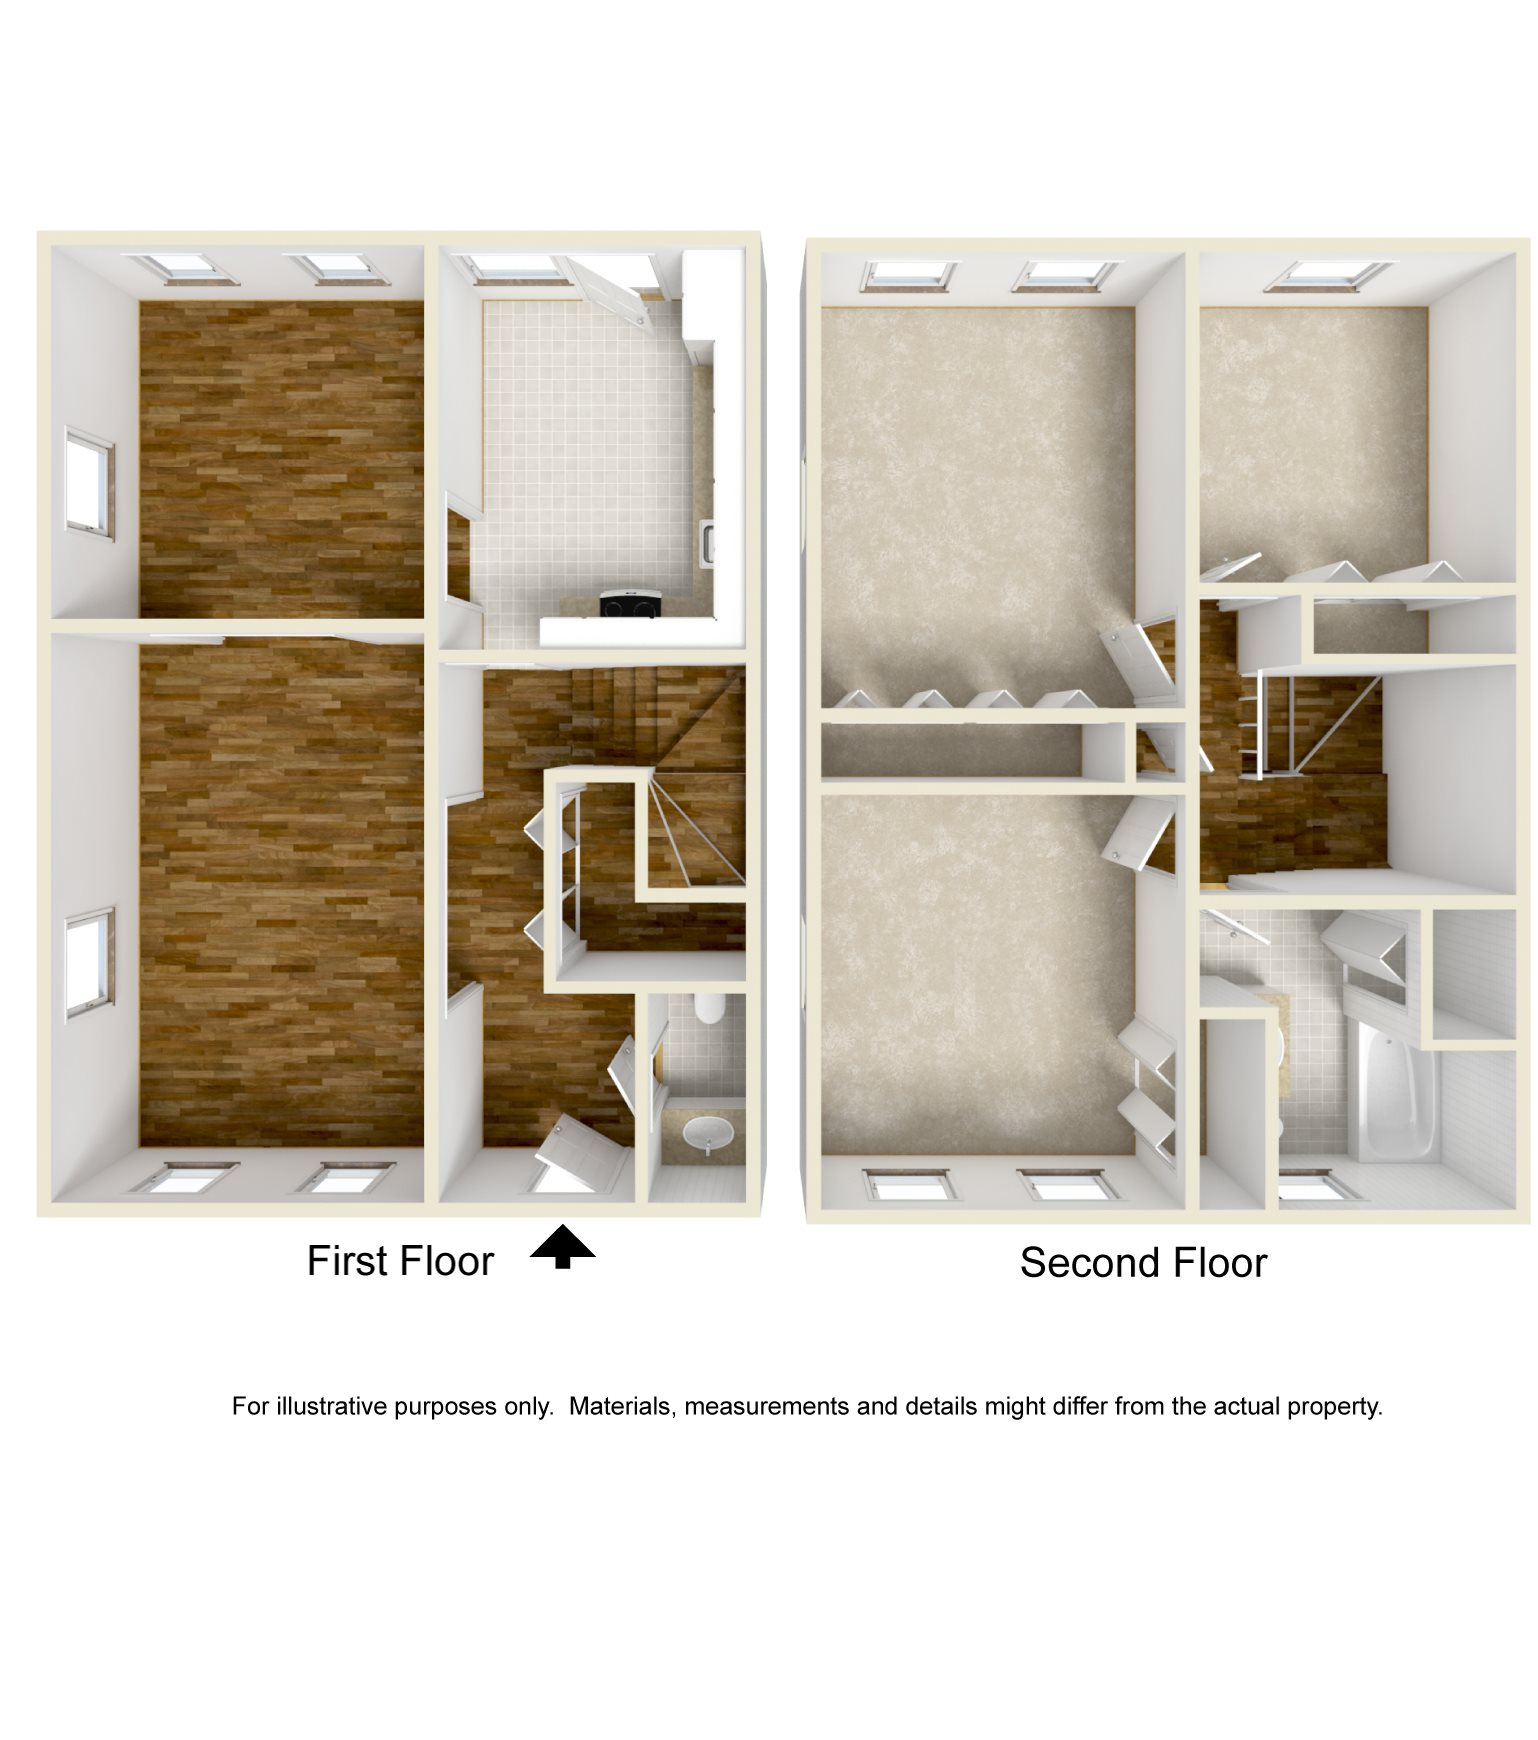 3 Bed Townhouse Floor Plan 4